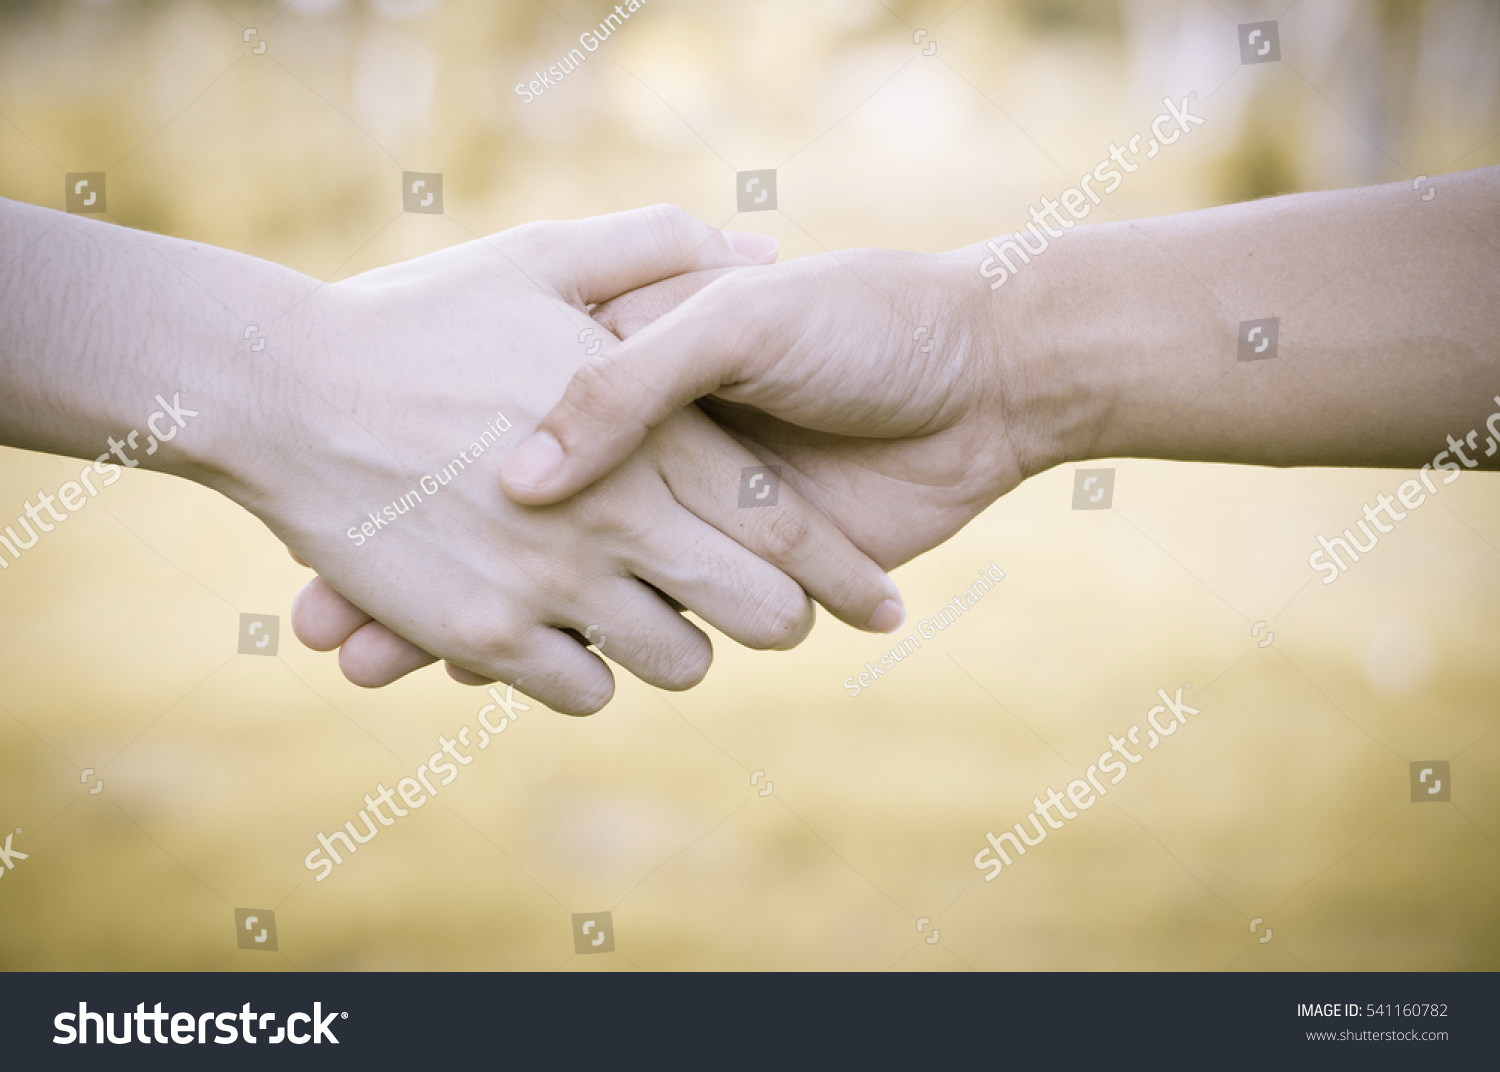 Two hands helping hand to a friend,Business man and woman shaking hands,helping hand concept and international day of peace #541160782